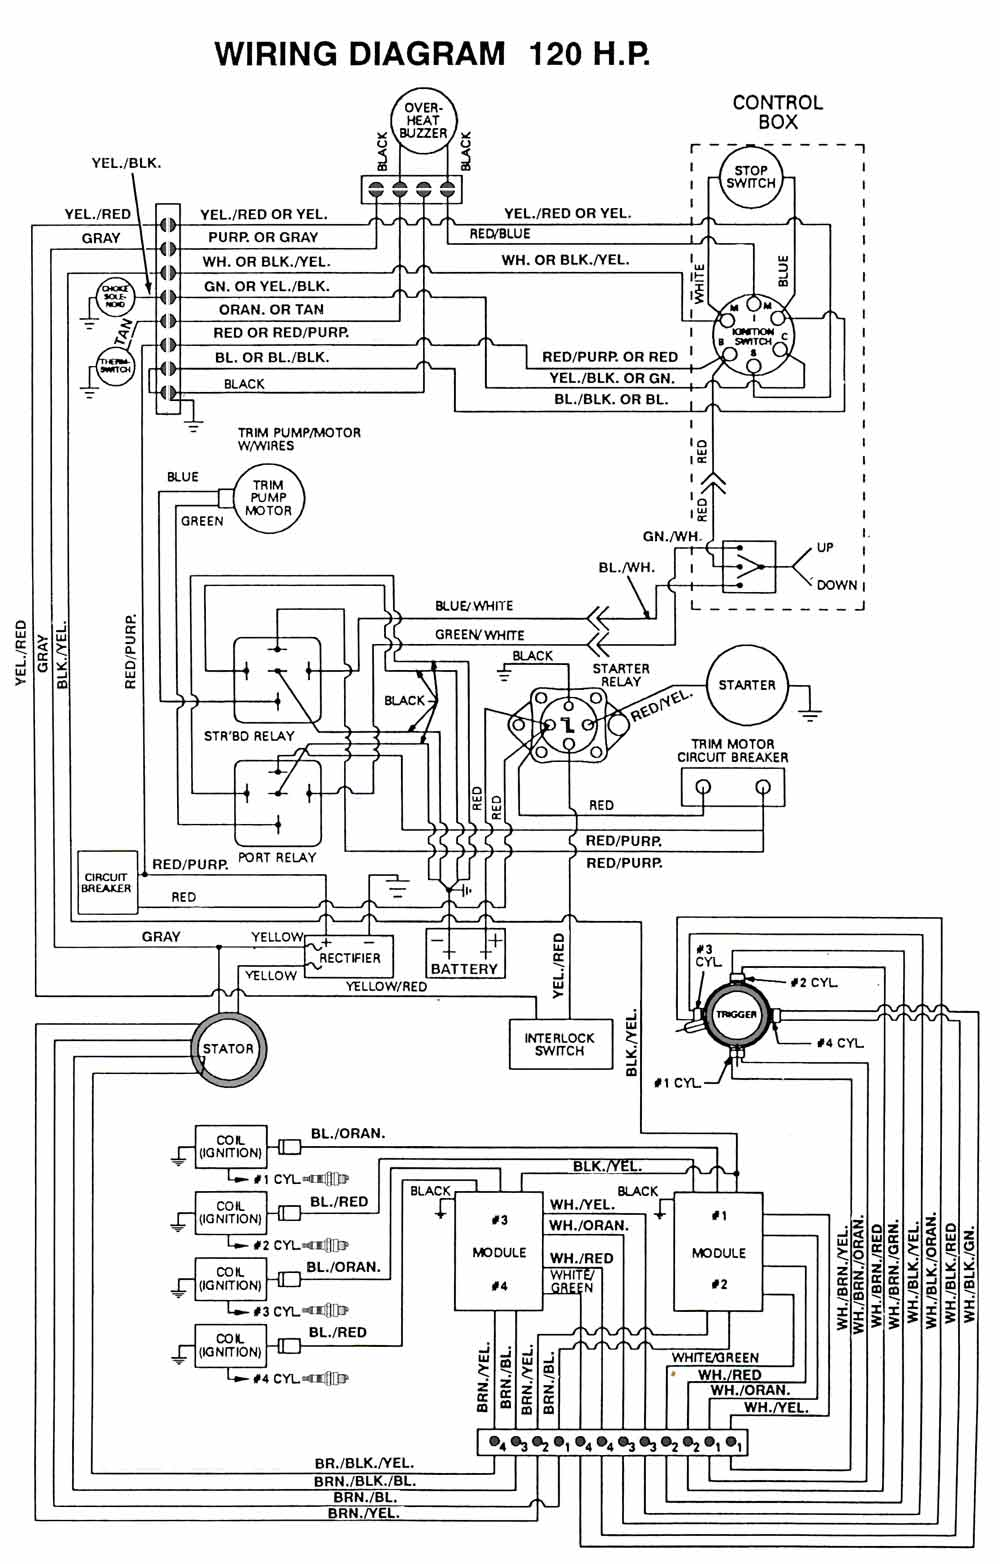 Chrysler Outboard Wiring Diagrams Mastertech Marine American Bass Diagram Force 120 Hp Thru 1991a Models Engine